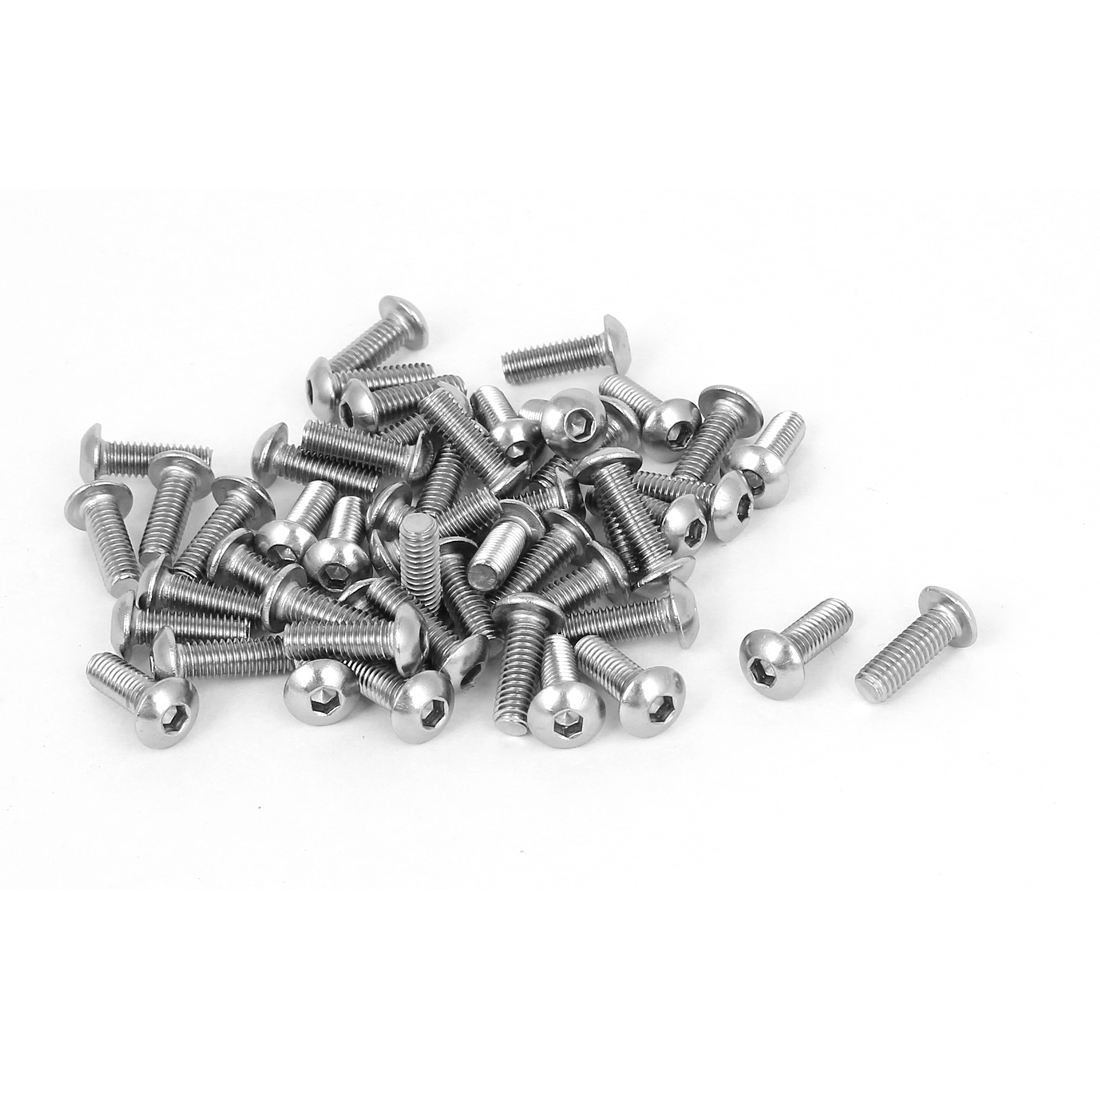 50 Pcs M4x12mm Metric Stainless Steel Hex Socket Button Head Cap Bolts Screws